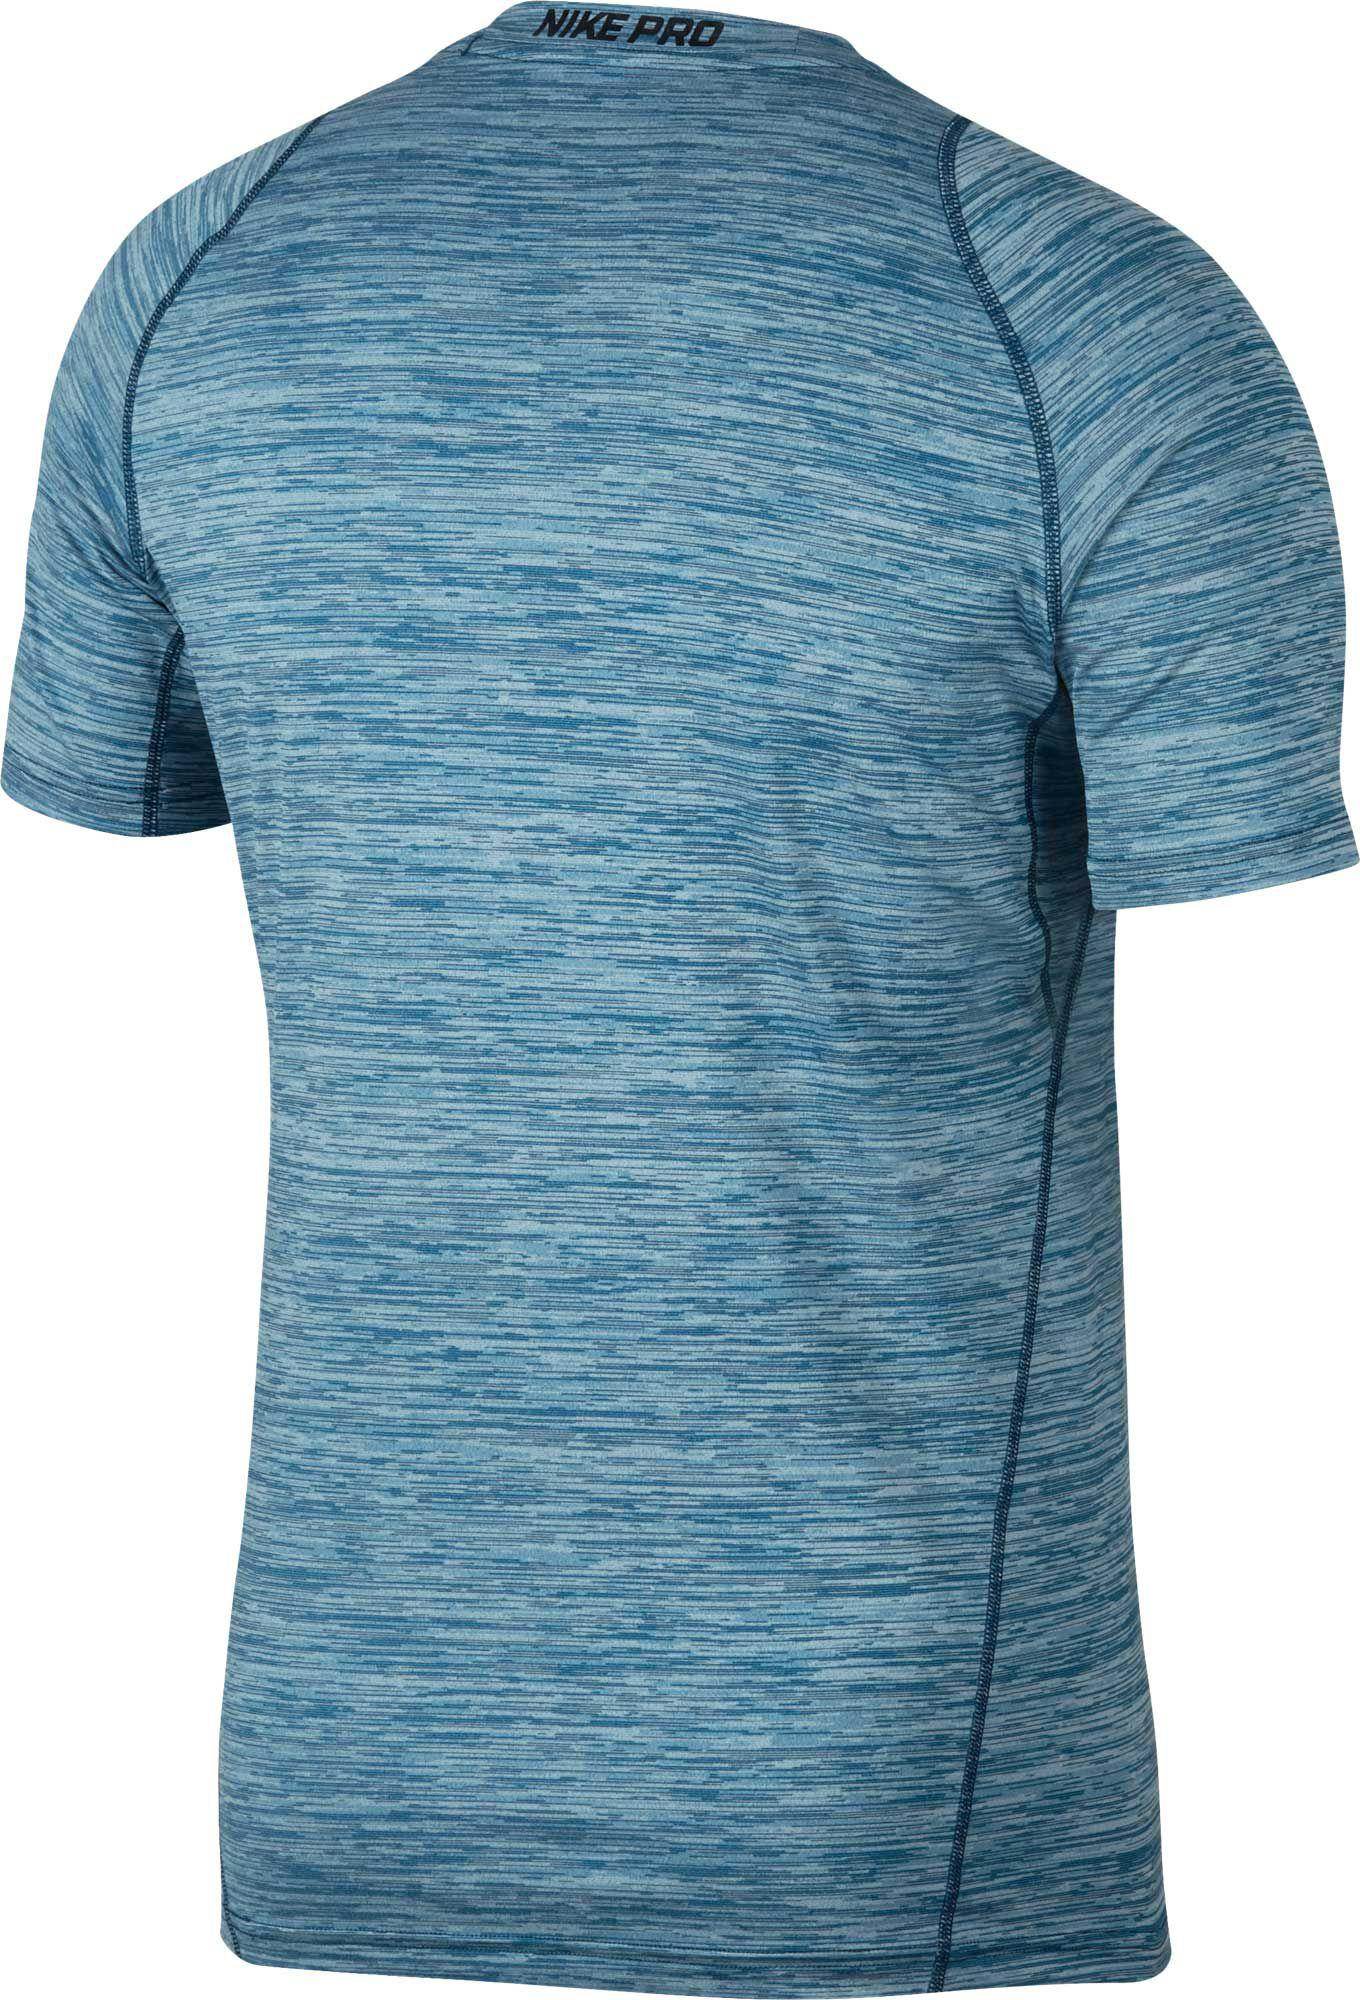 Lyst - Nike Pro Heather Printed Fitted T-shirt in Blue for Men 5168dc6be9f